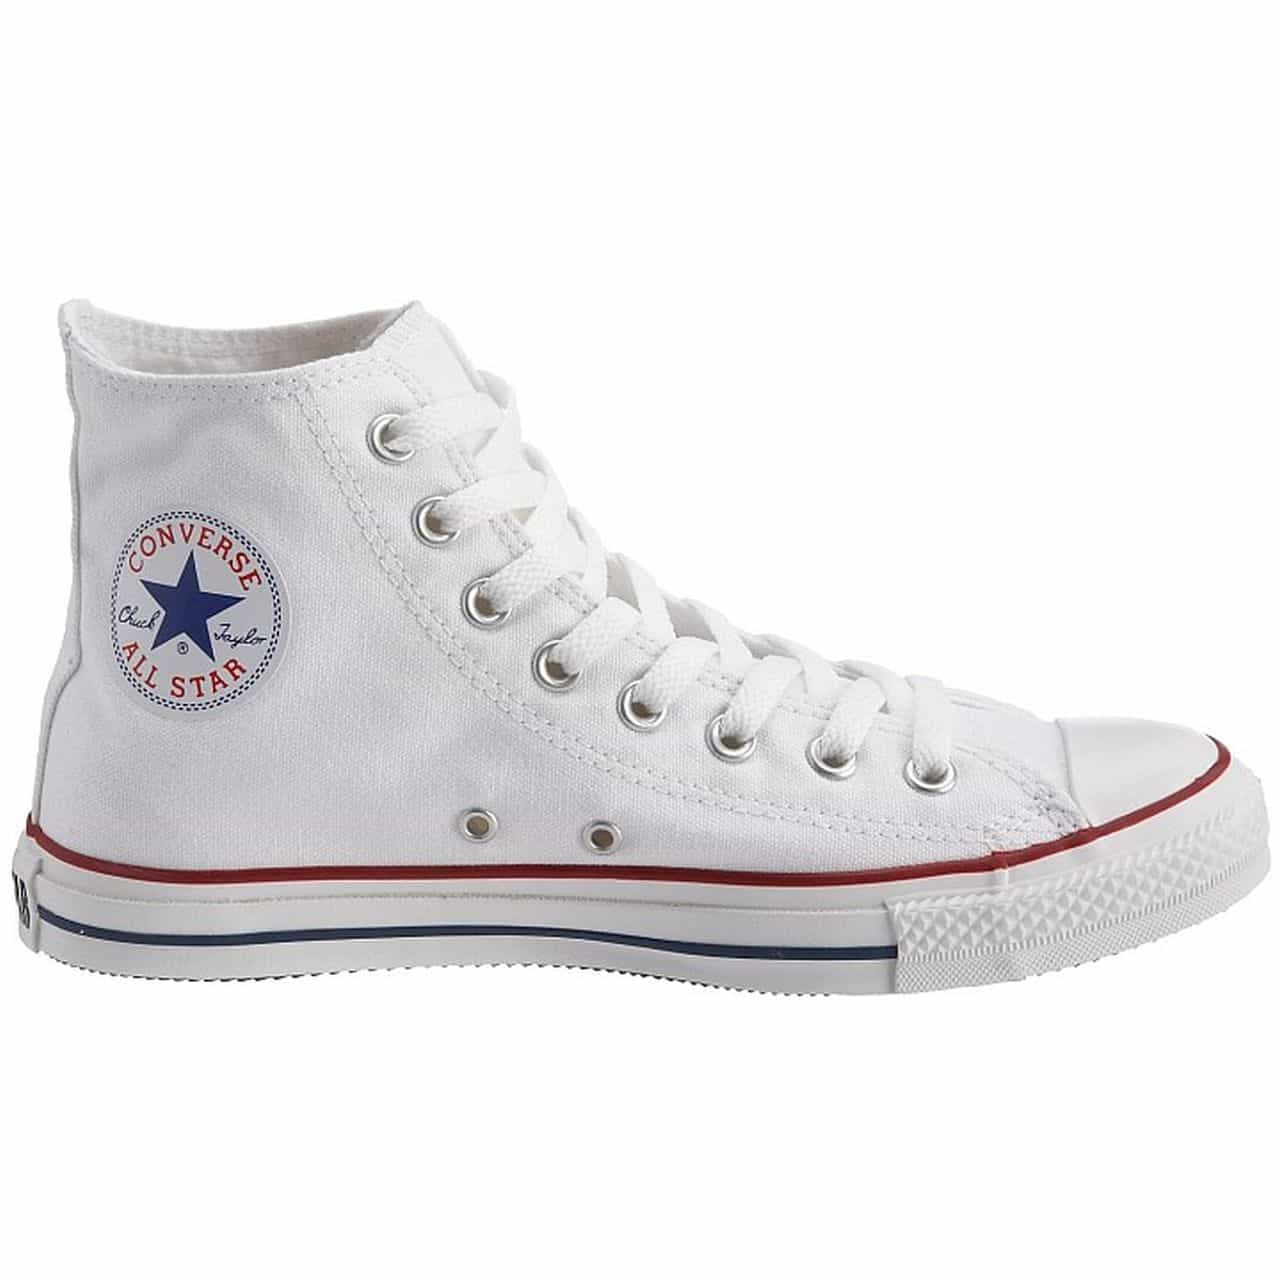 TENISI CONVERSE ALL STAR HI - M7650C